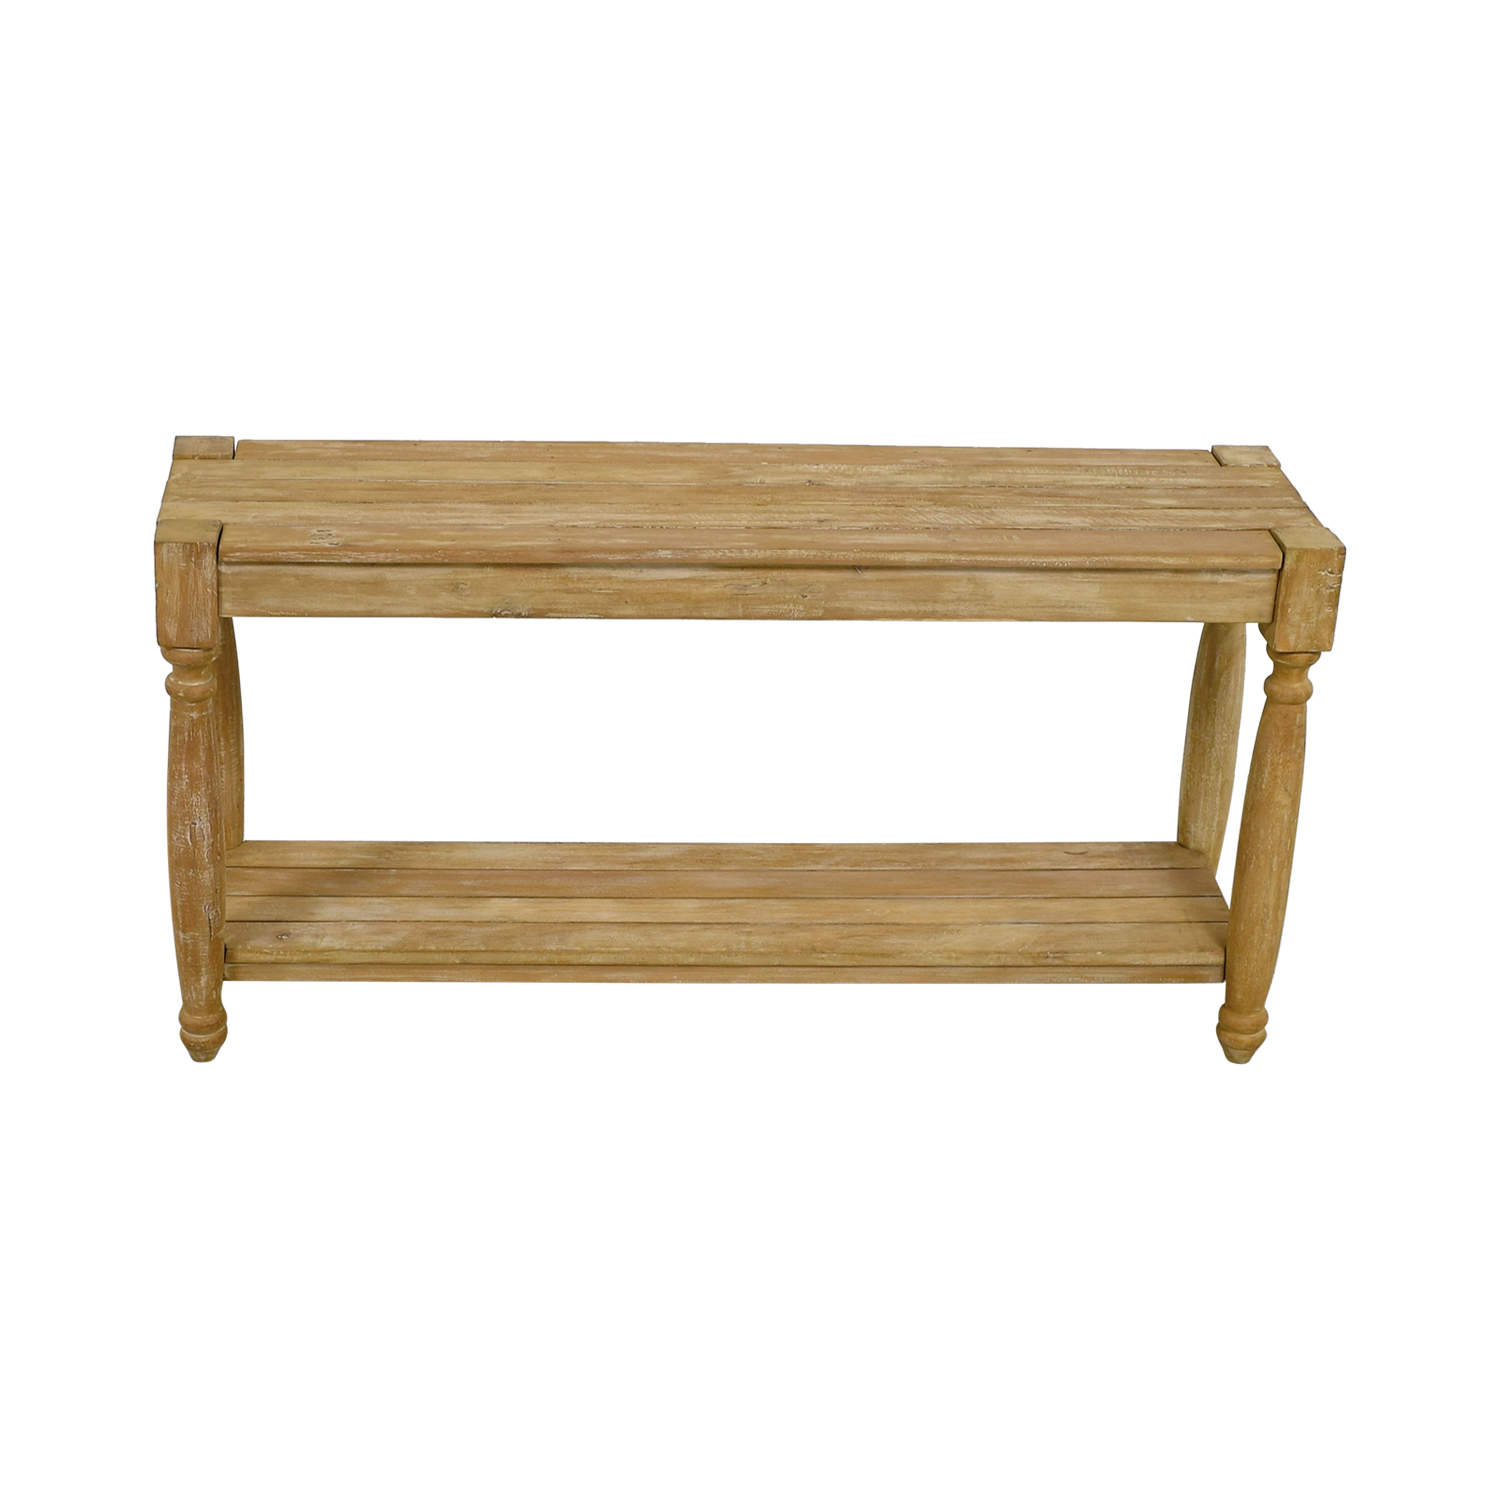 HomeGoods HomeGoods Natural Wood Console Table on sale